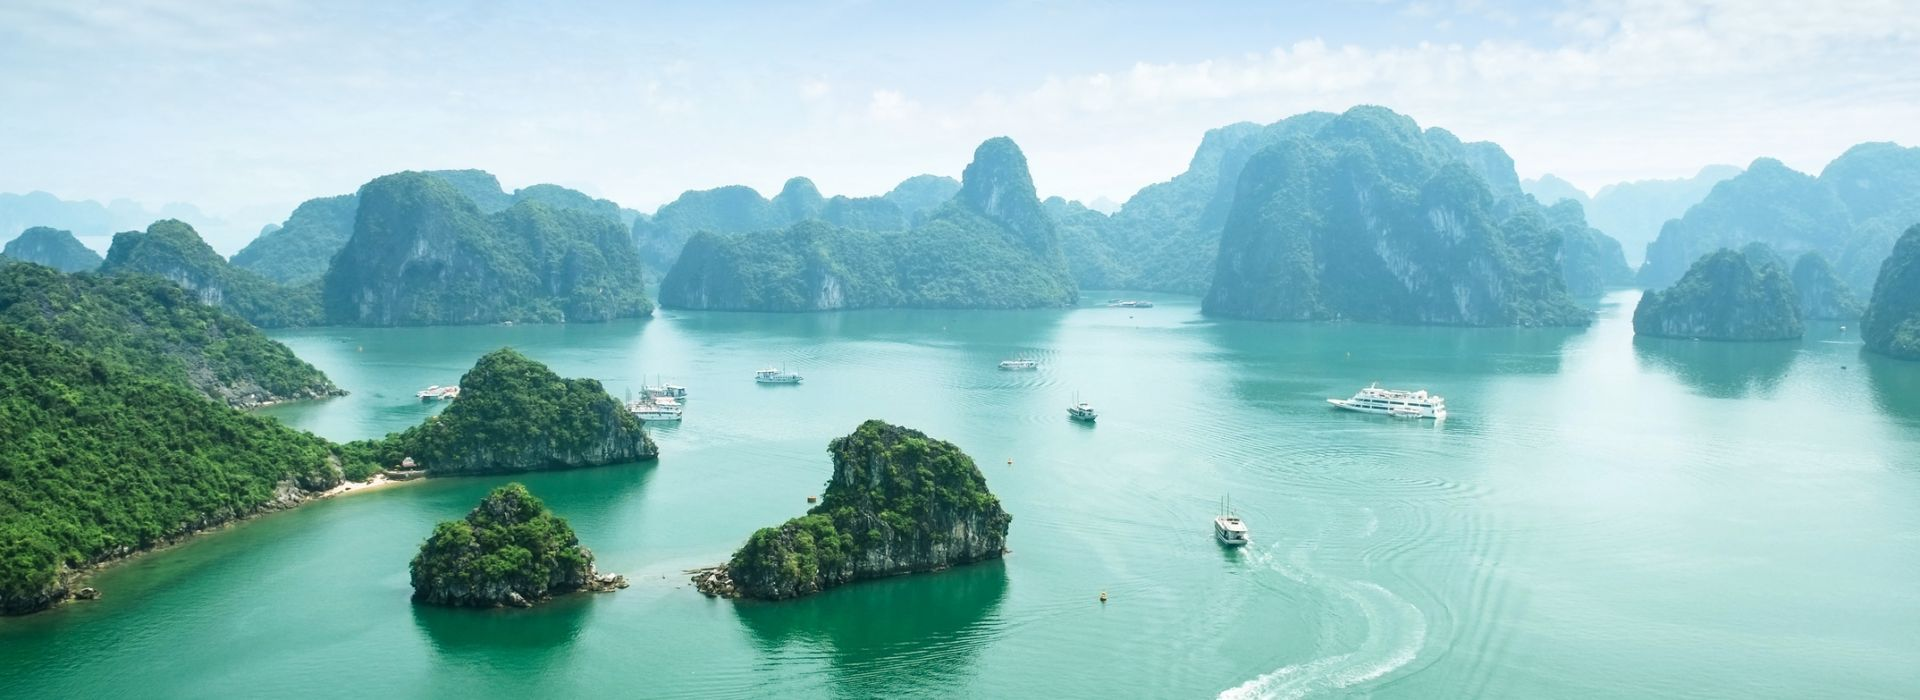 National parks Tours in Vietnam